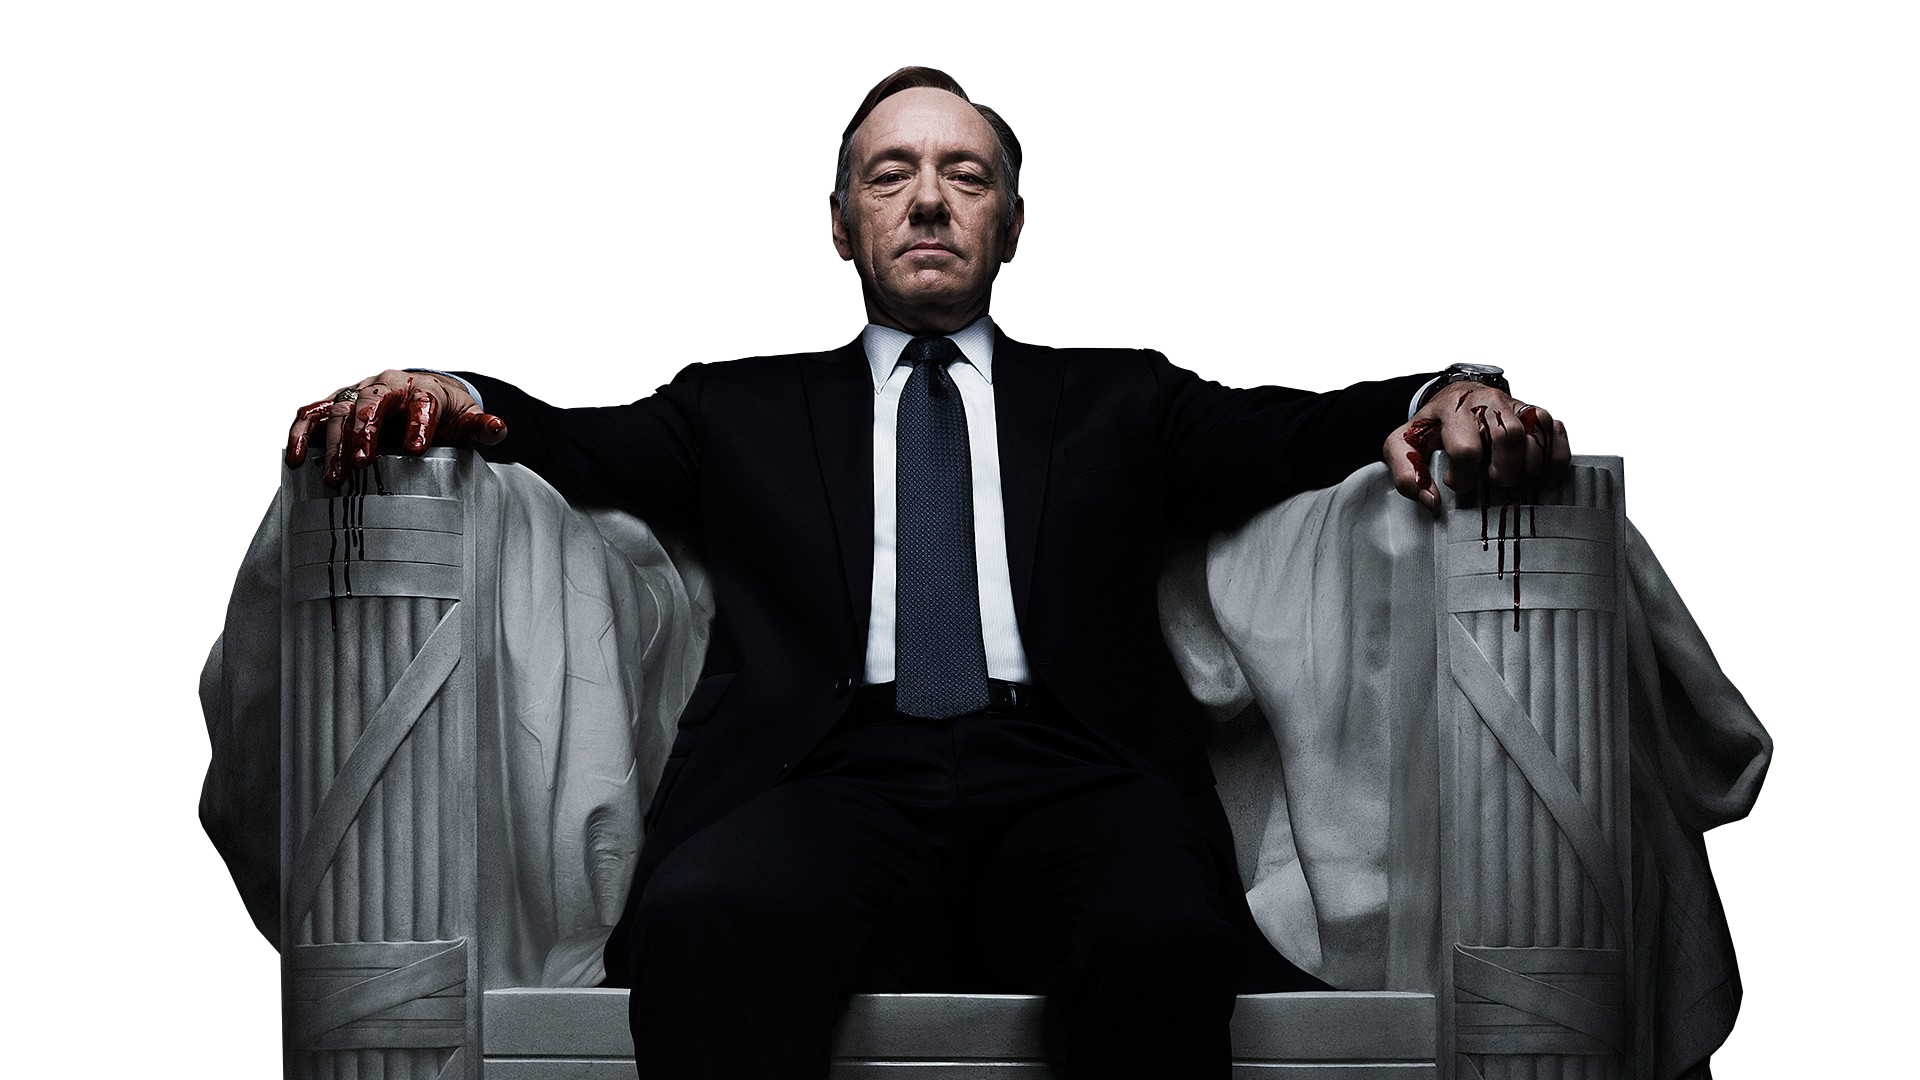 House of cards png. Frank underwood imgur